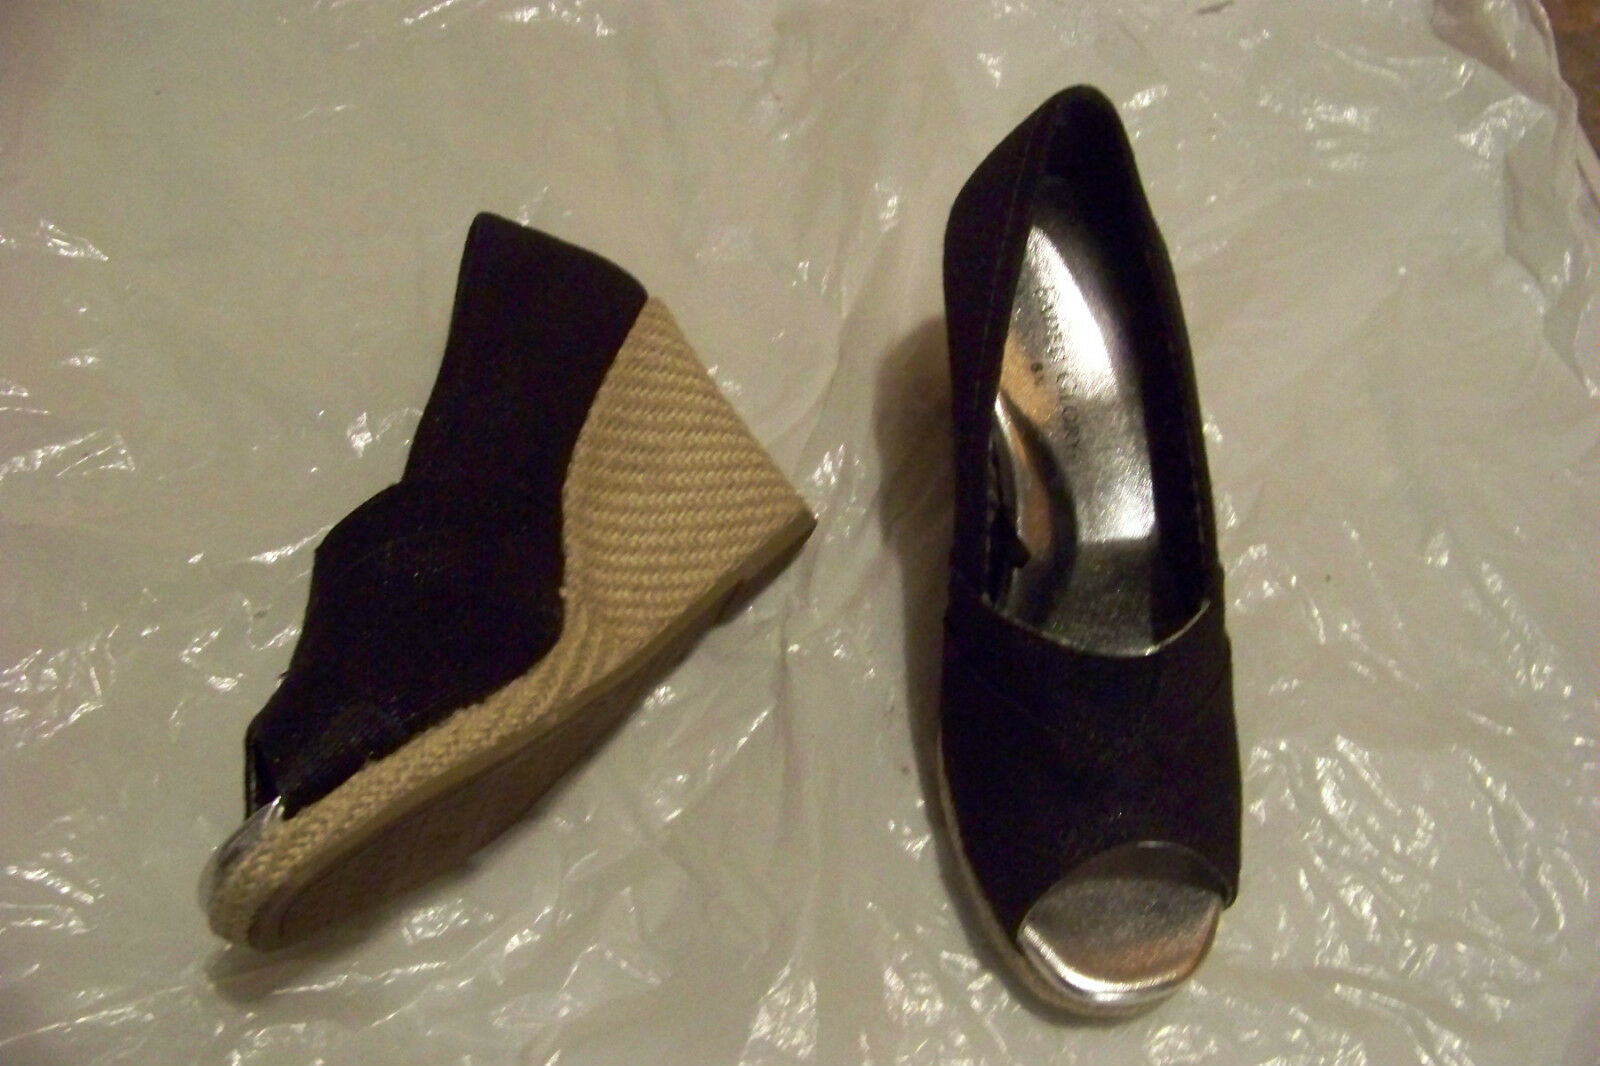 womens faded glory black heels fabric open toe wedge heels black shoe size 5 1/2 b84a6f